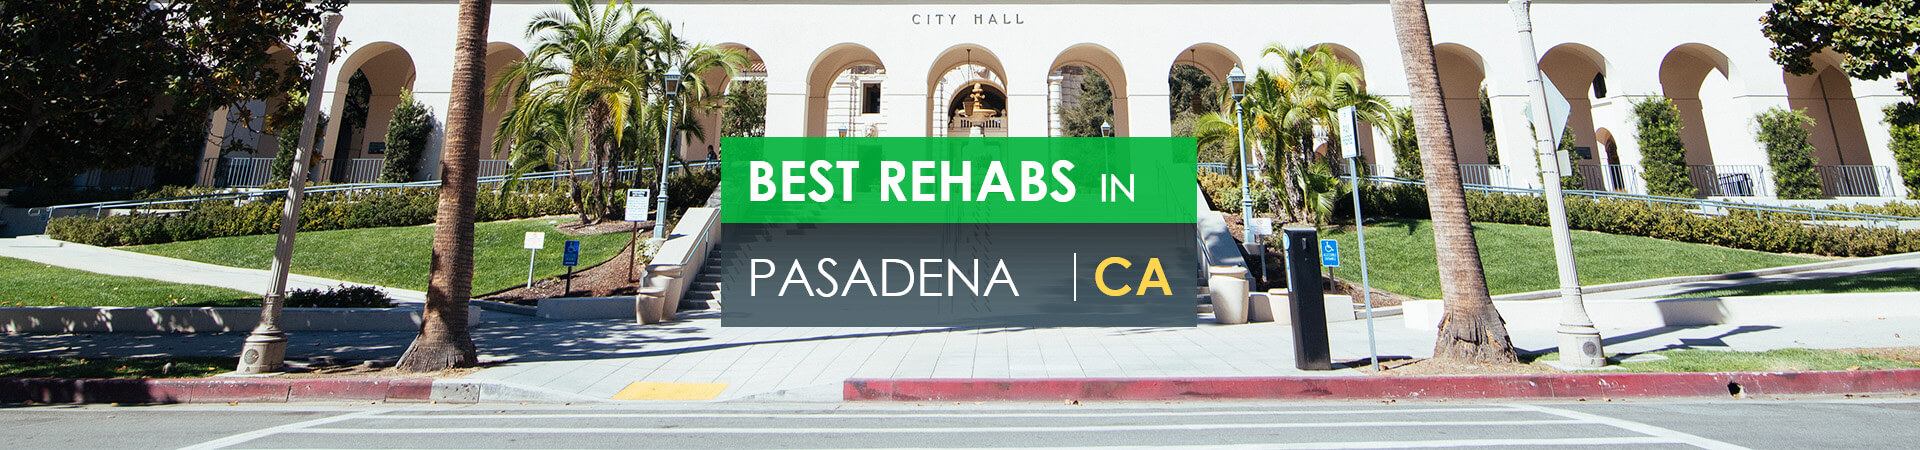 Best rehabs in Pasadena, CA